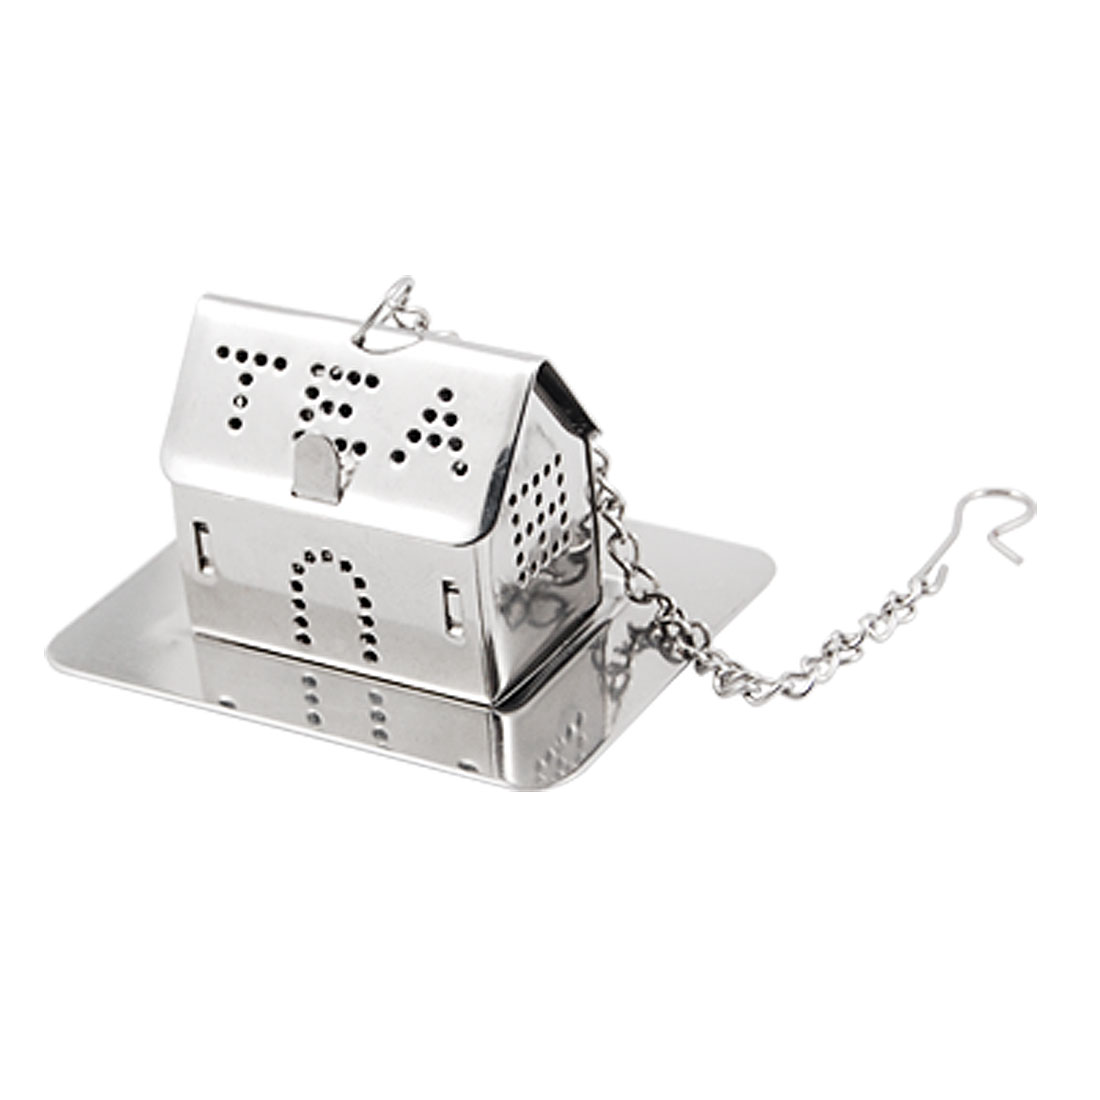 Stainless Steel Mini Tray House Shaped Tea Infuser Strainer Mesh Ball